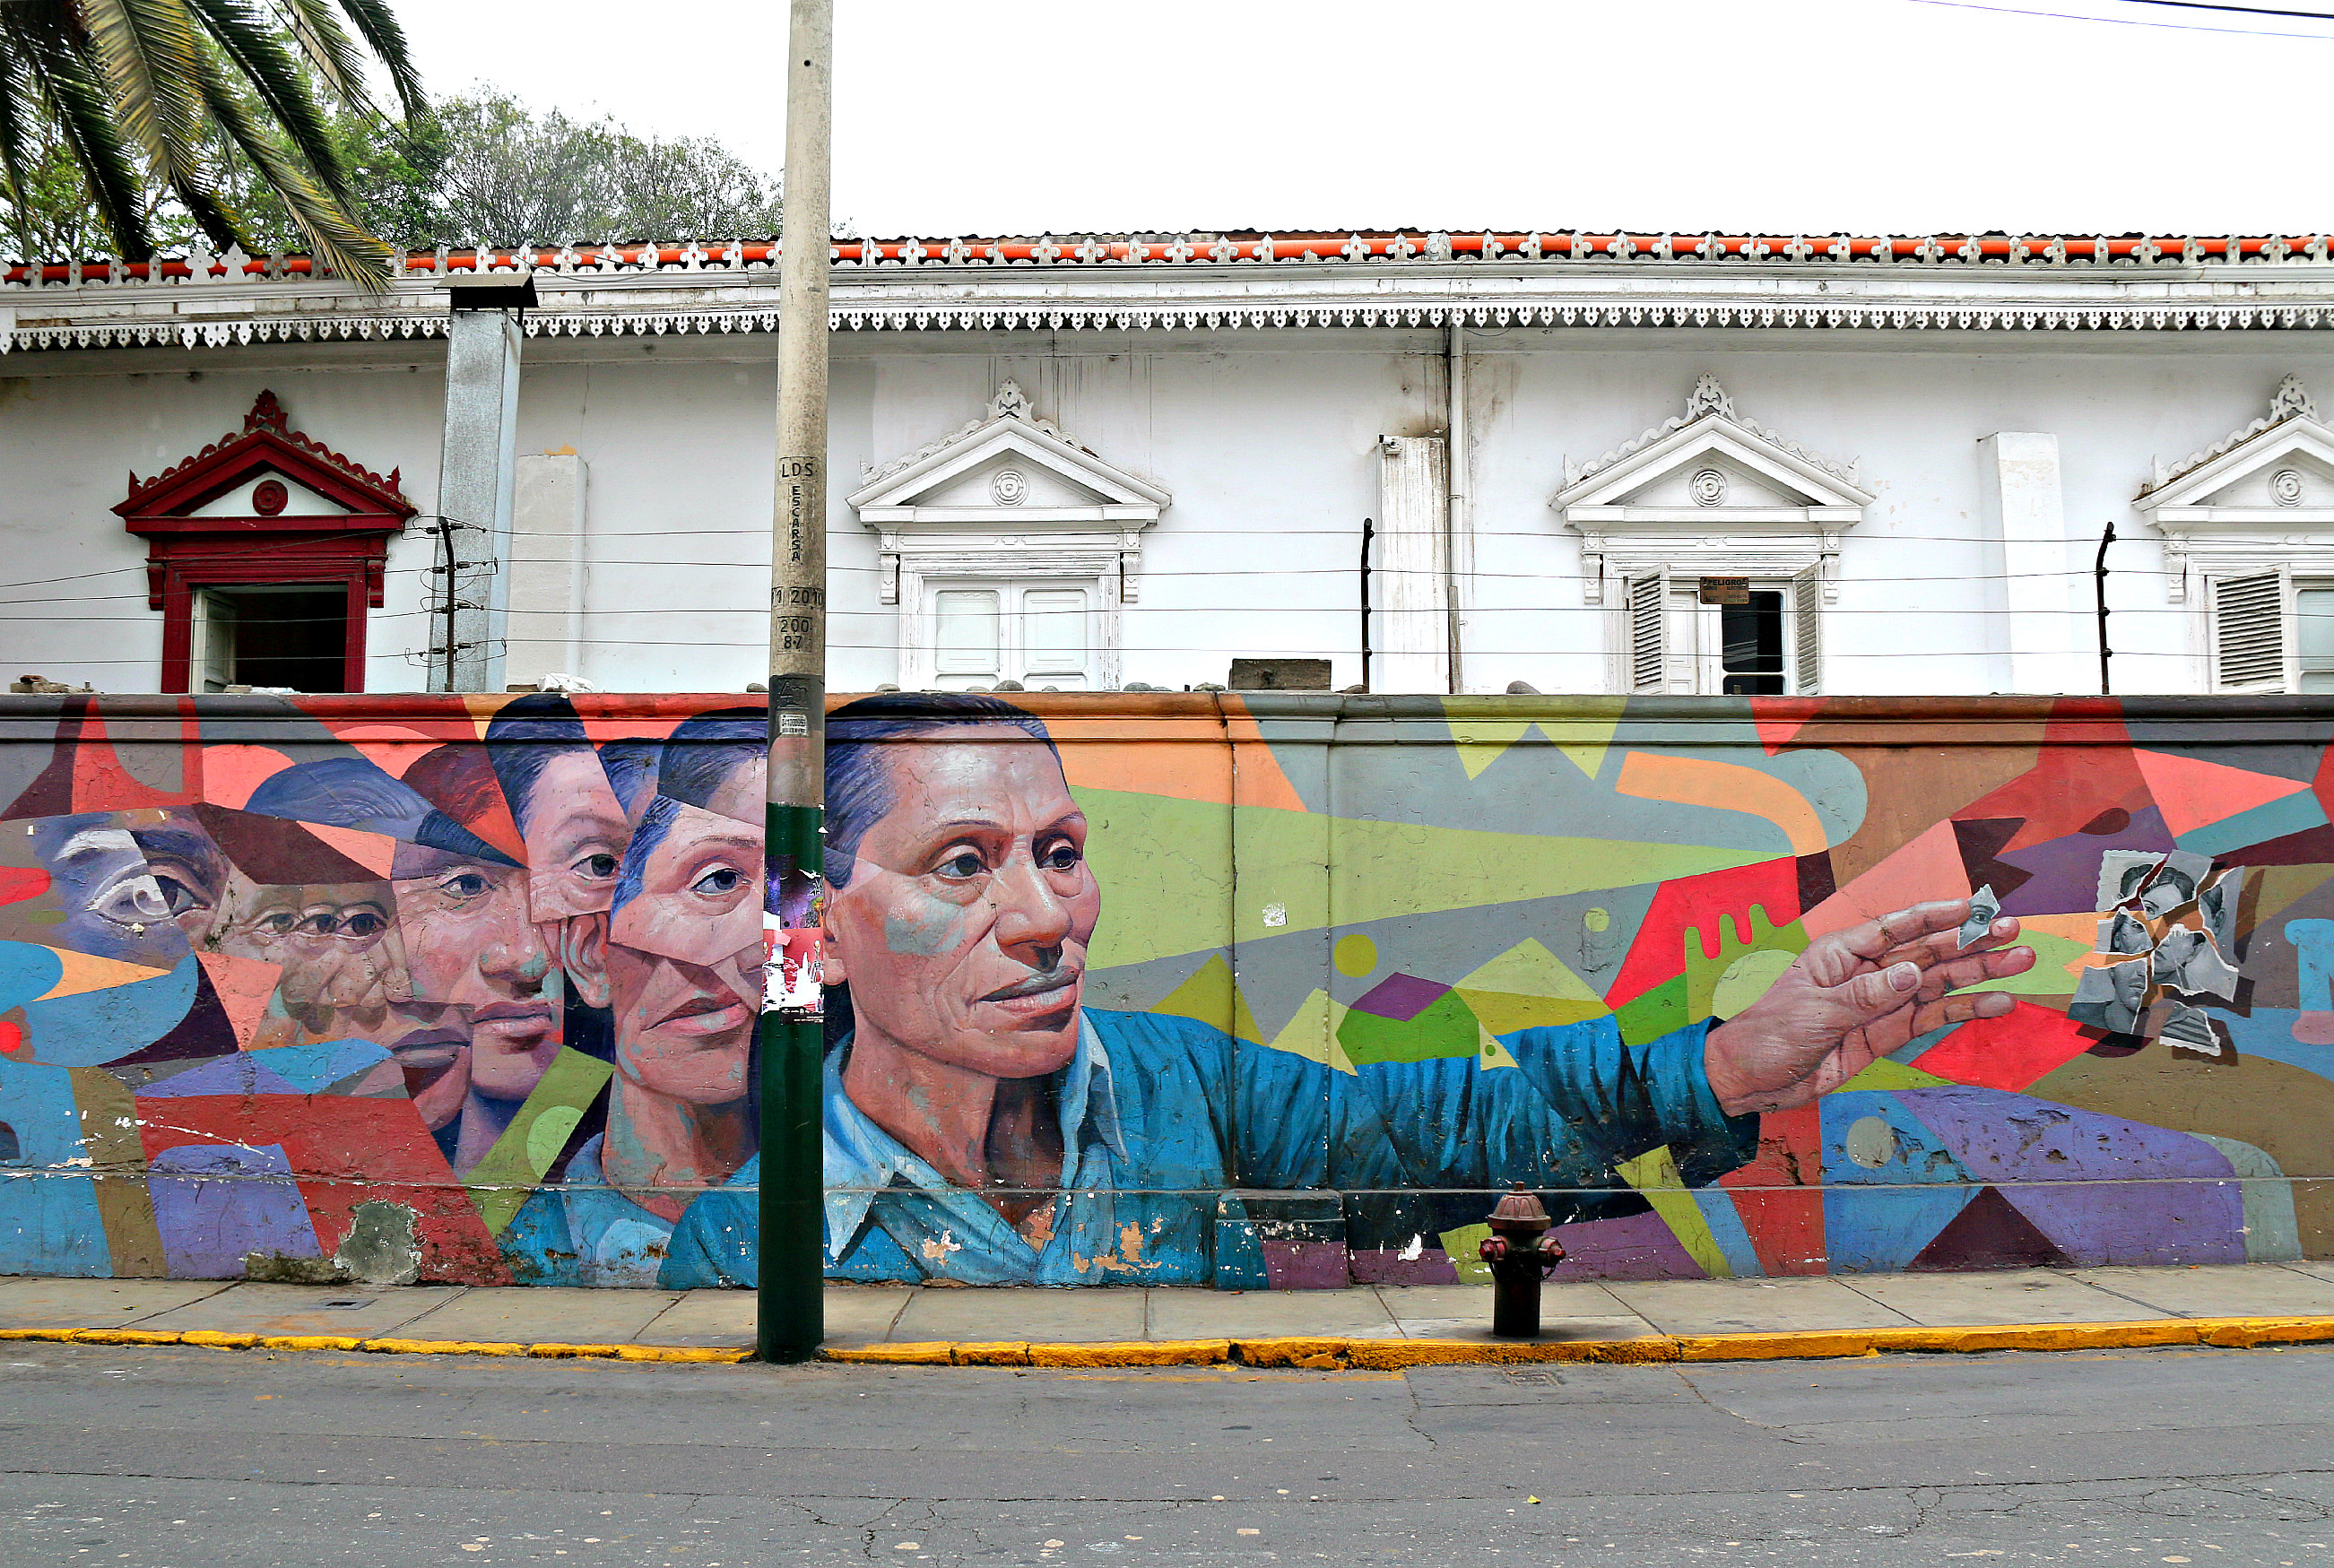 where to to find street art in Barranco, Lima on 28 de Julio Street N.N. Decertor